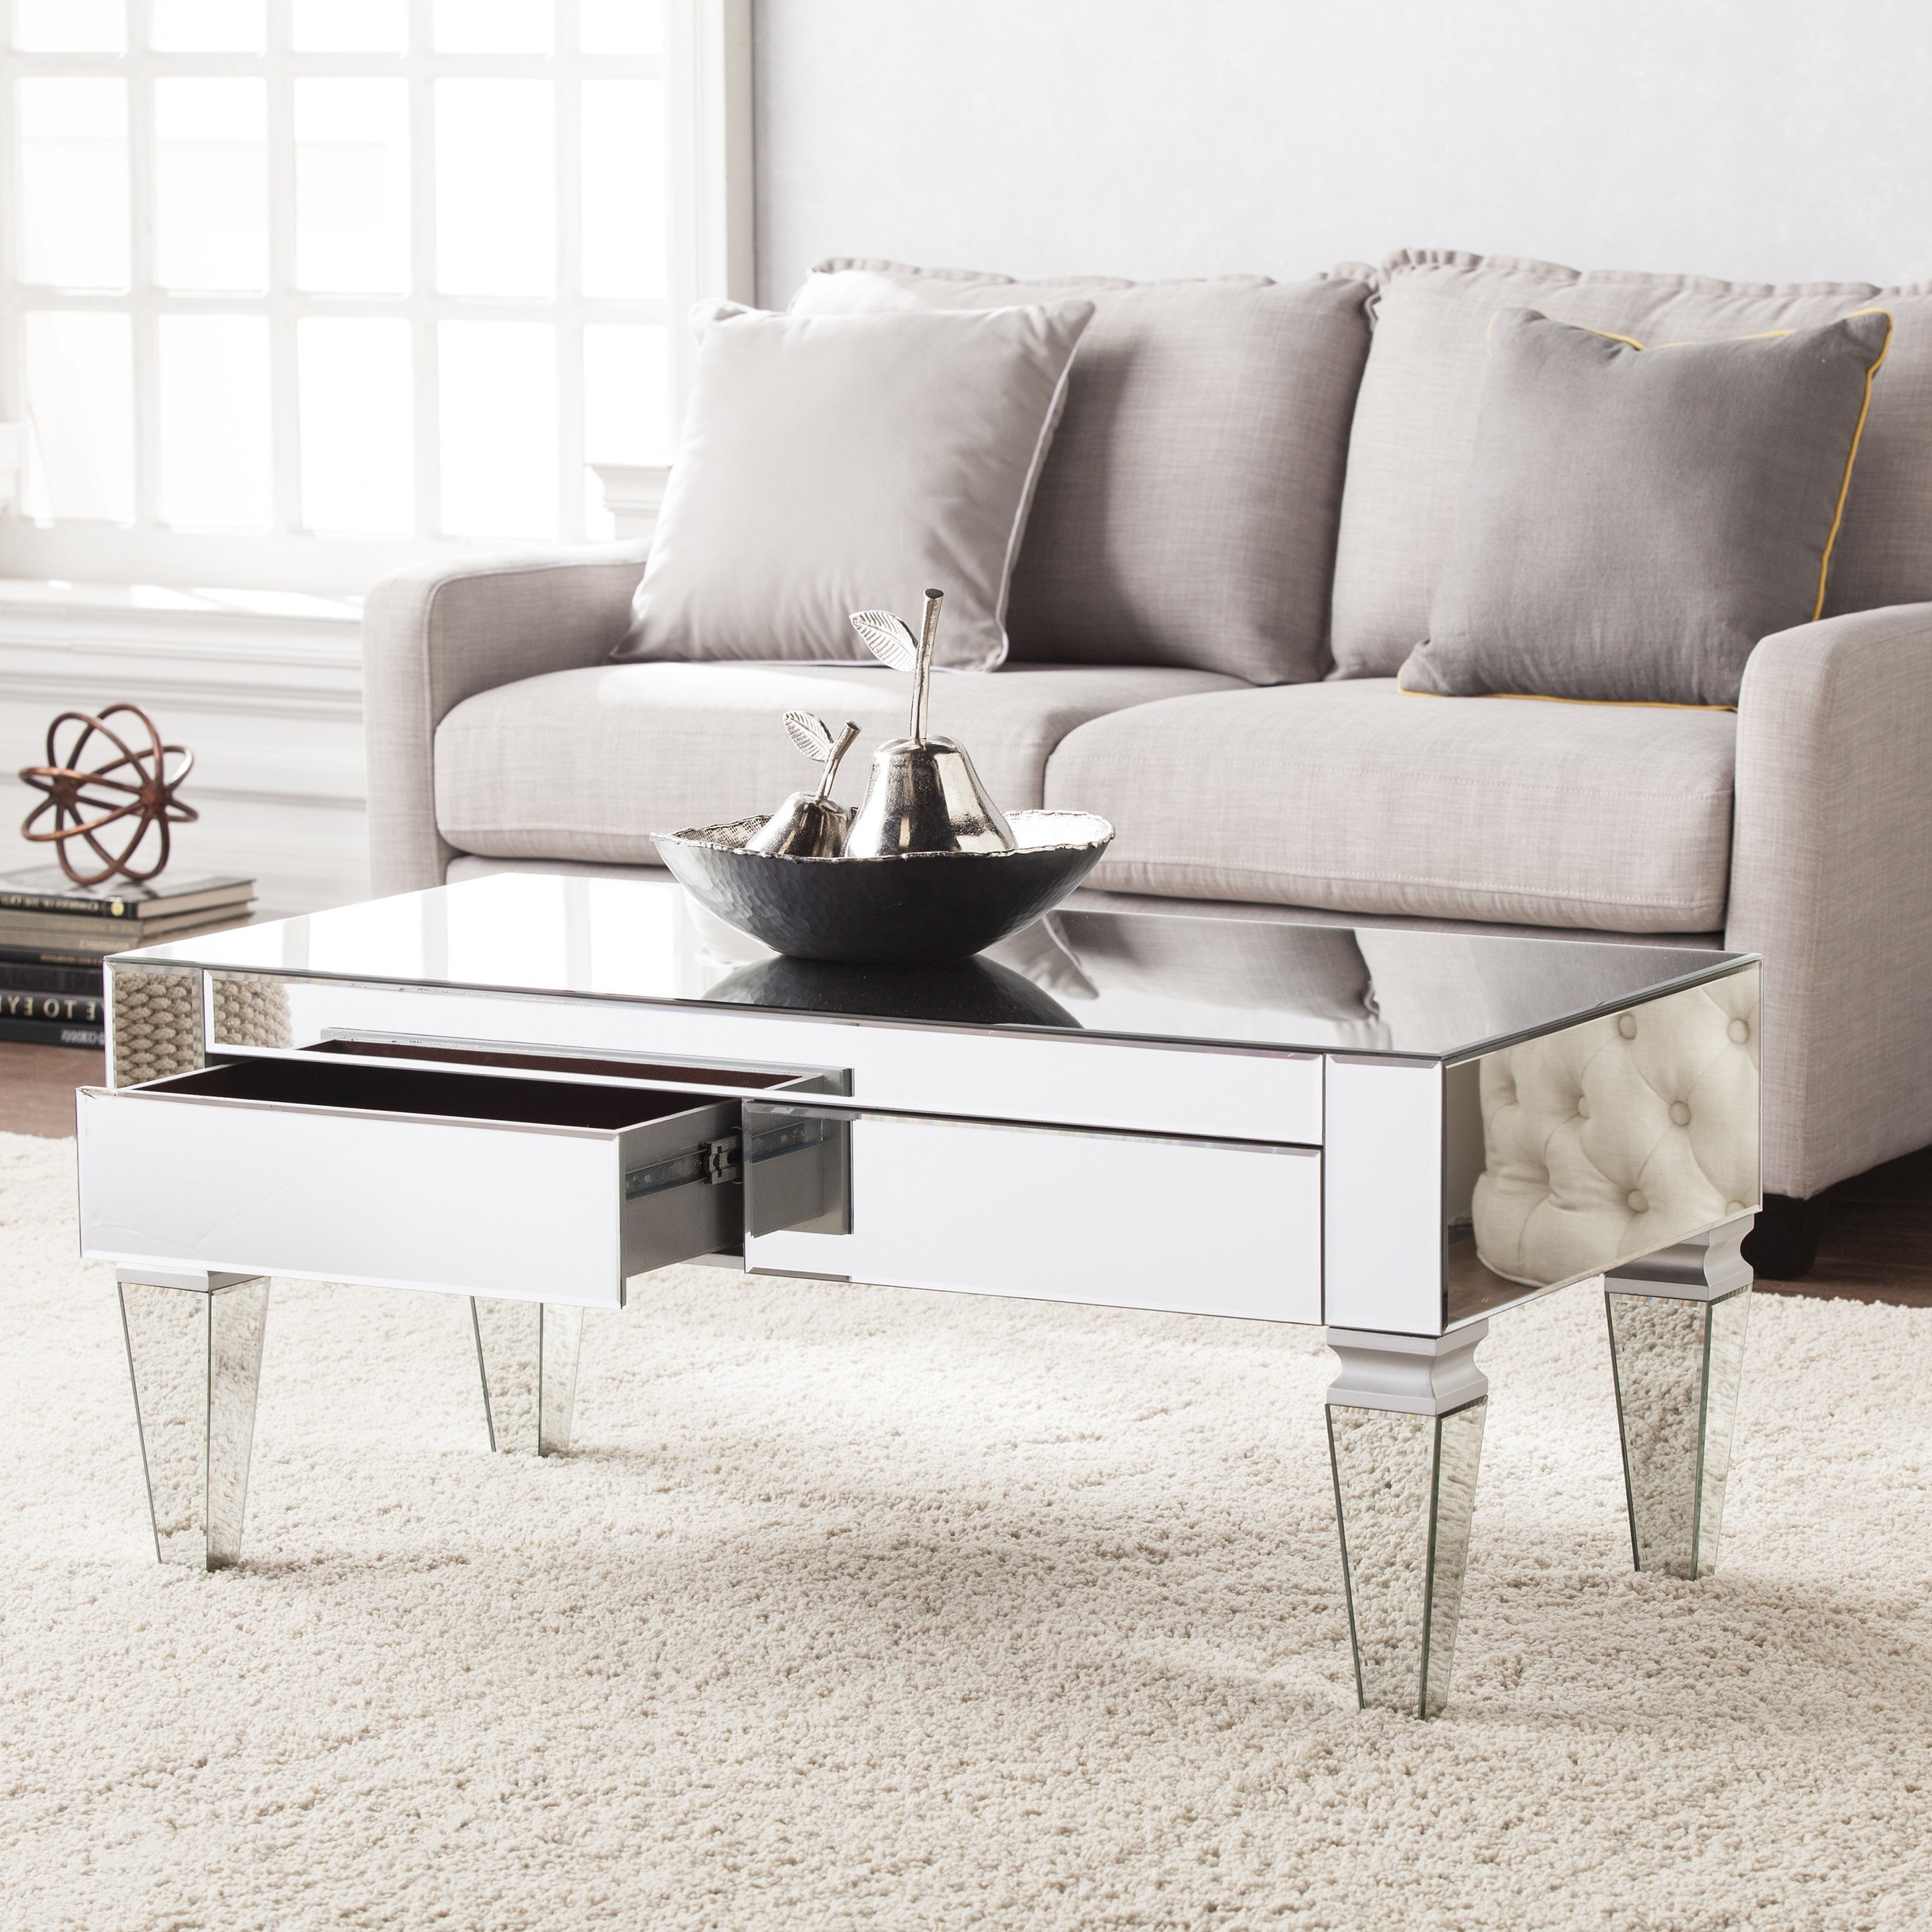 2019 Upton Home Dalton Mirrored Cocktail Tables Intended For Silver Orchid Olivia Contemporary Mirrored Rectangular Cocktail Table (Gallery 8 of 20)